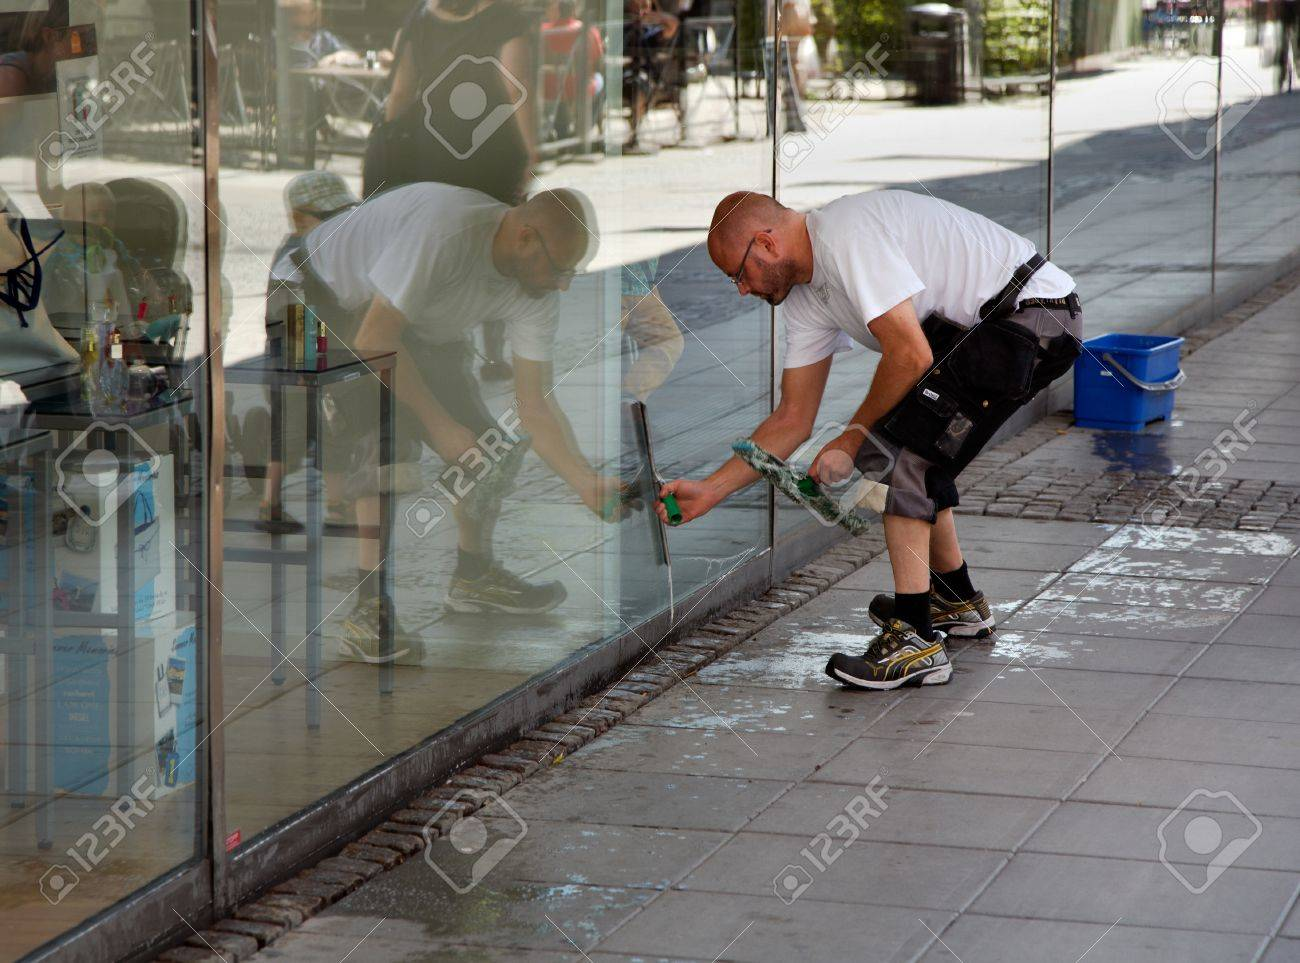 SODERTALJE, SWEDEN - July 20, 2012:  A man cleaning the windows of the shop window to the store Kringlan in S?t?e. Stock Photo - 14681889